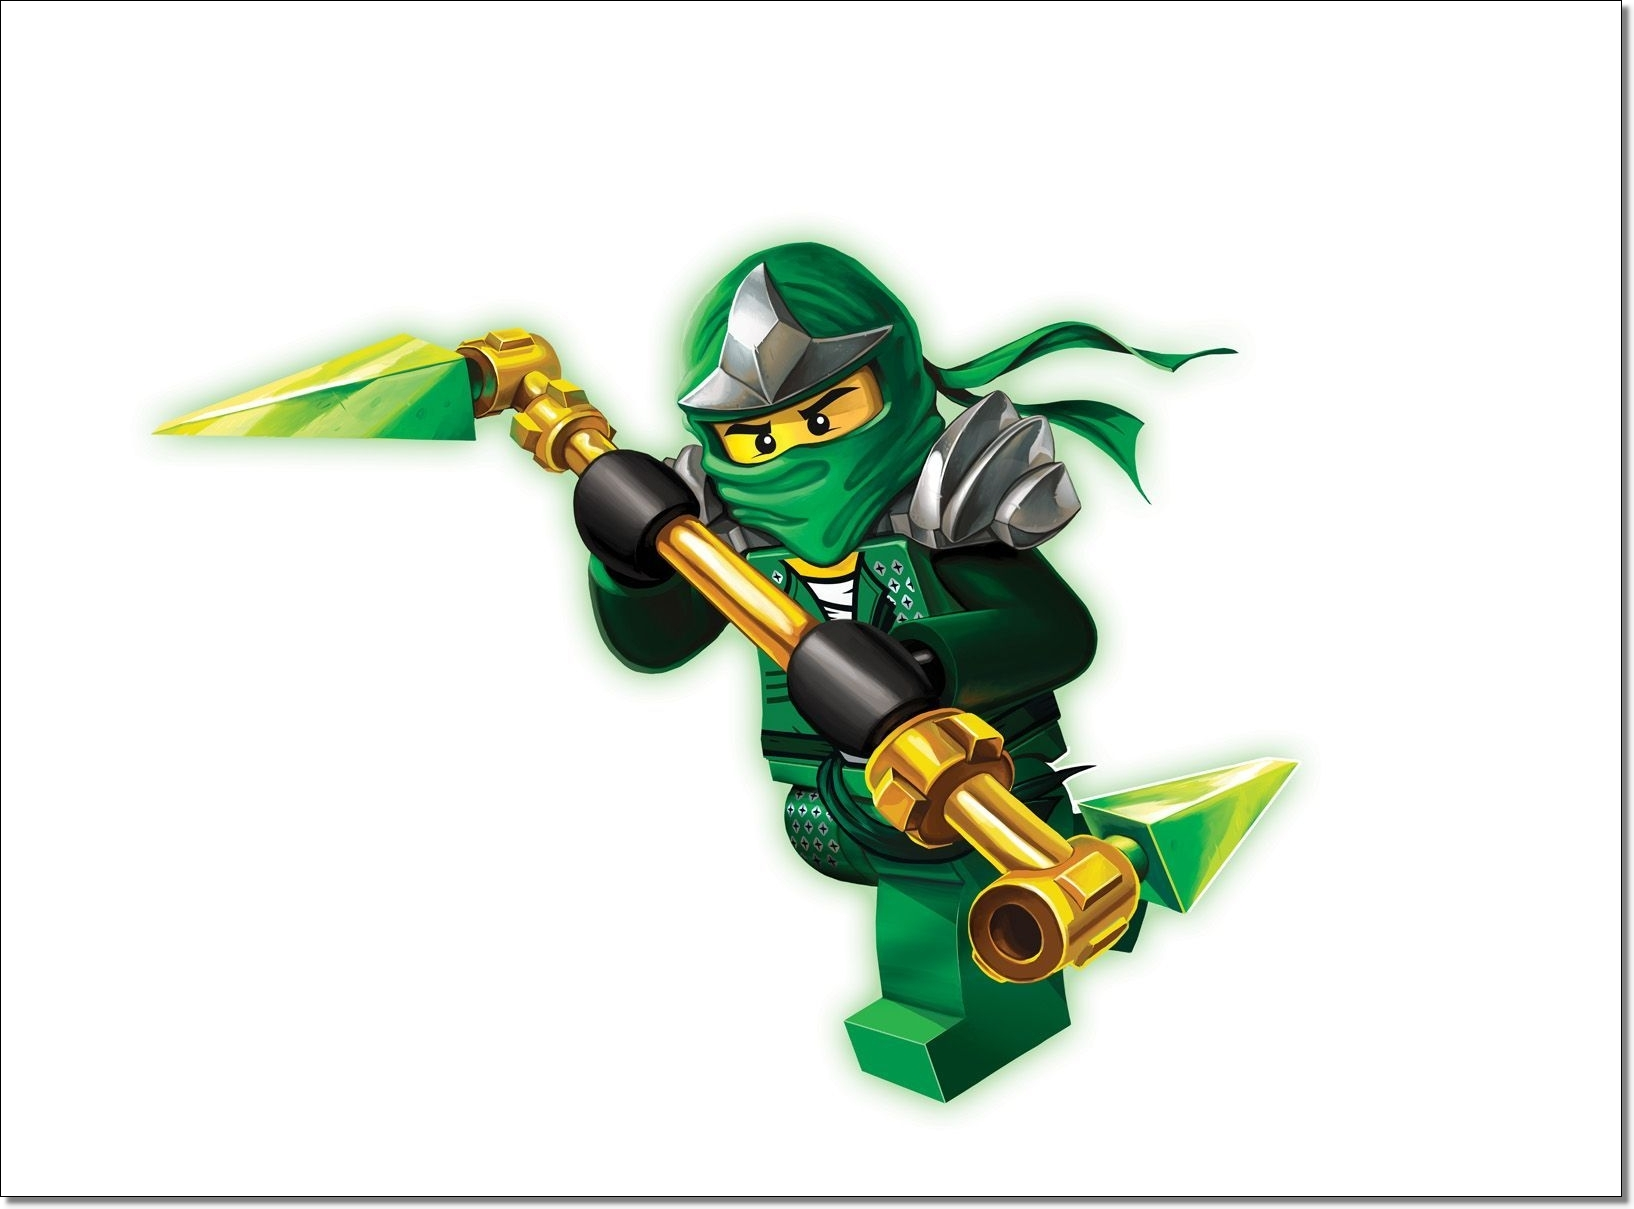 Free LEGO Ninjago Cliparts, Download Free Clip Art, Free Clip Art on.